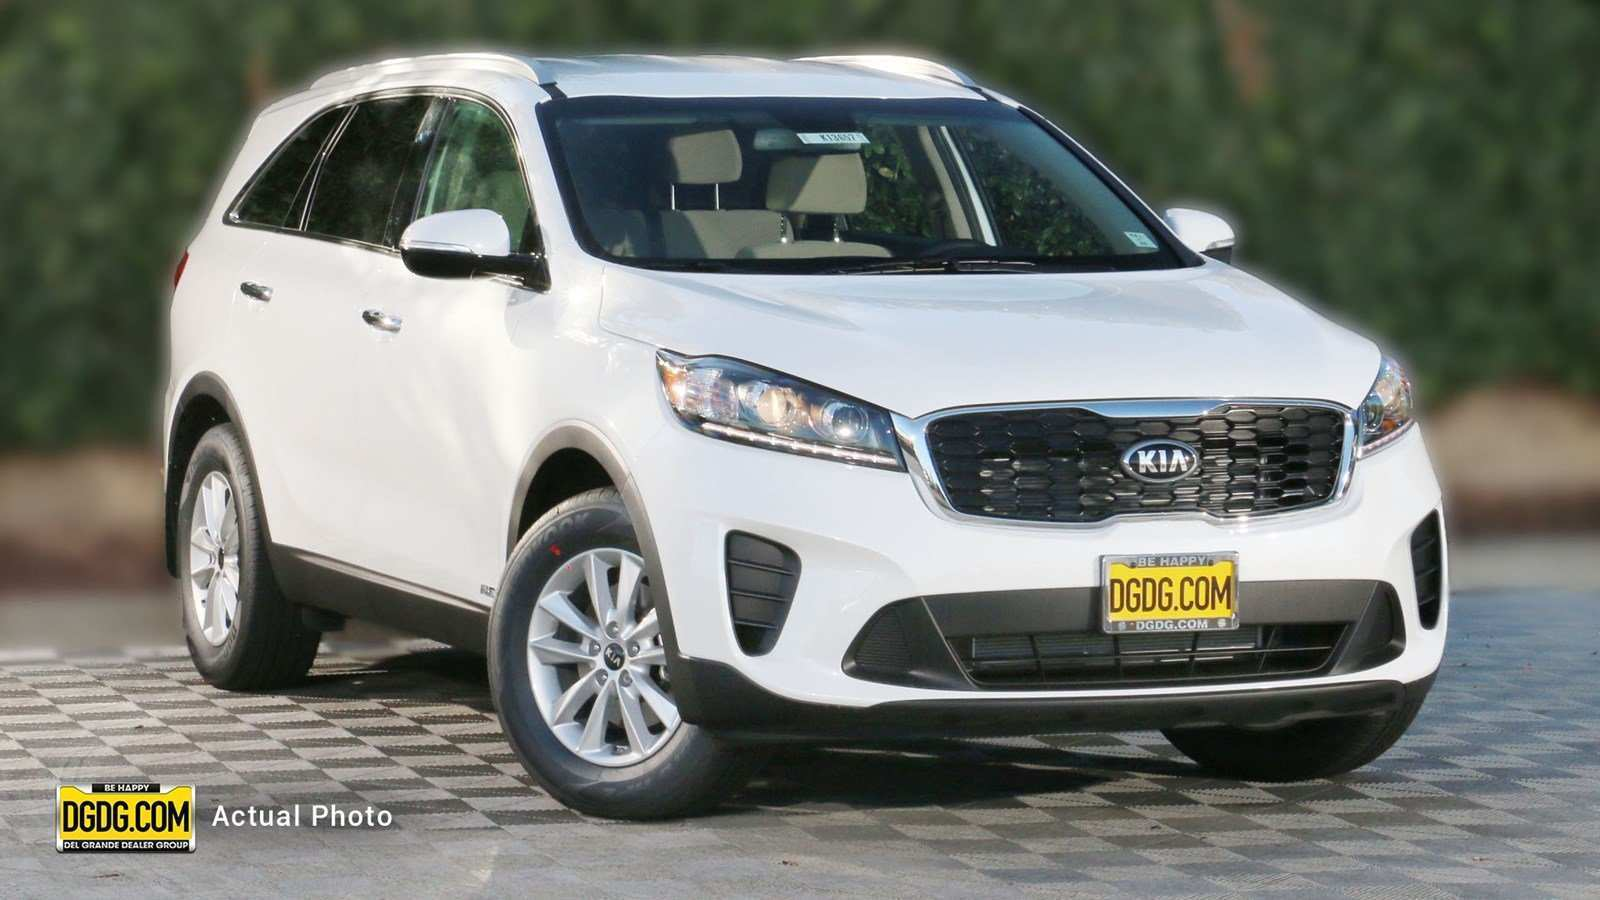 51 Best Review New 2019 Kia Sorento Lx V6 Awd Specs New Concept by New 2019 Kia Sorento Lx V6 Awd Specs